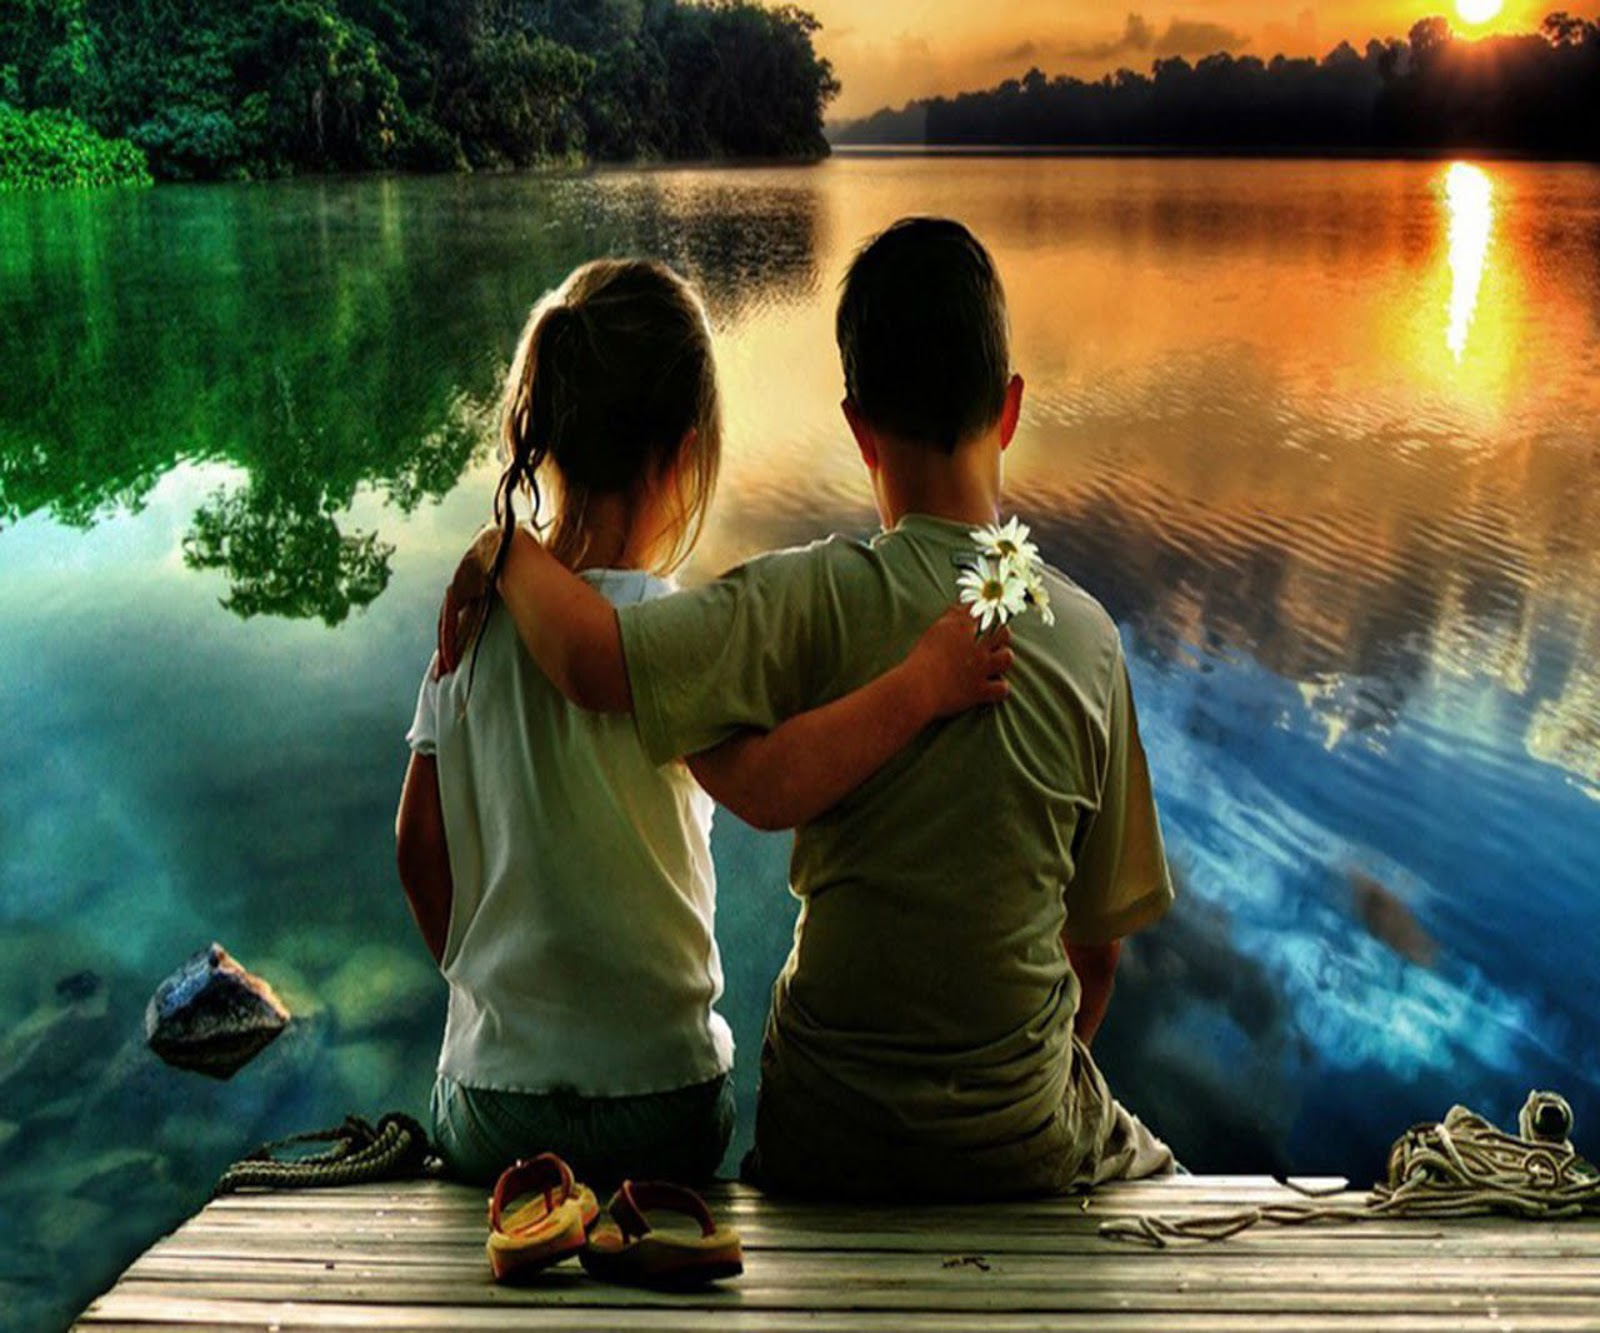 Love Wallpaper Bewafa : Shayari Urdu Images,urdu shayari with picture,urdu shayari ...